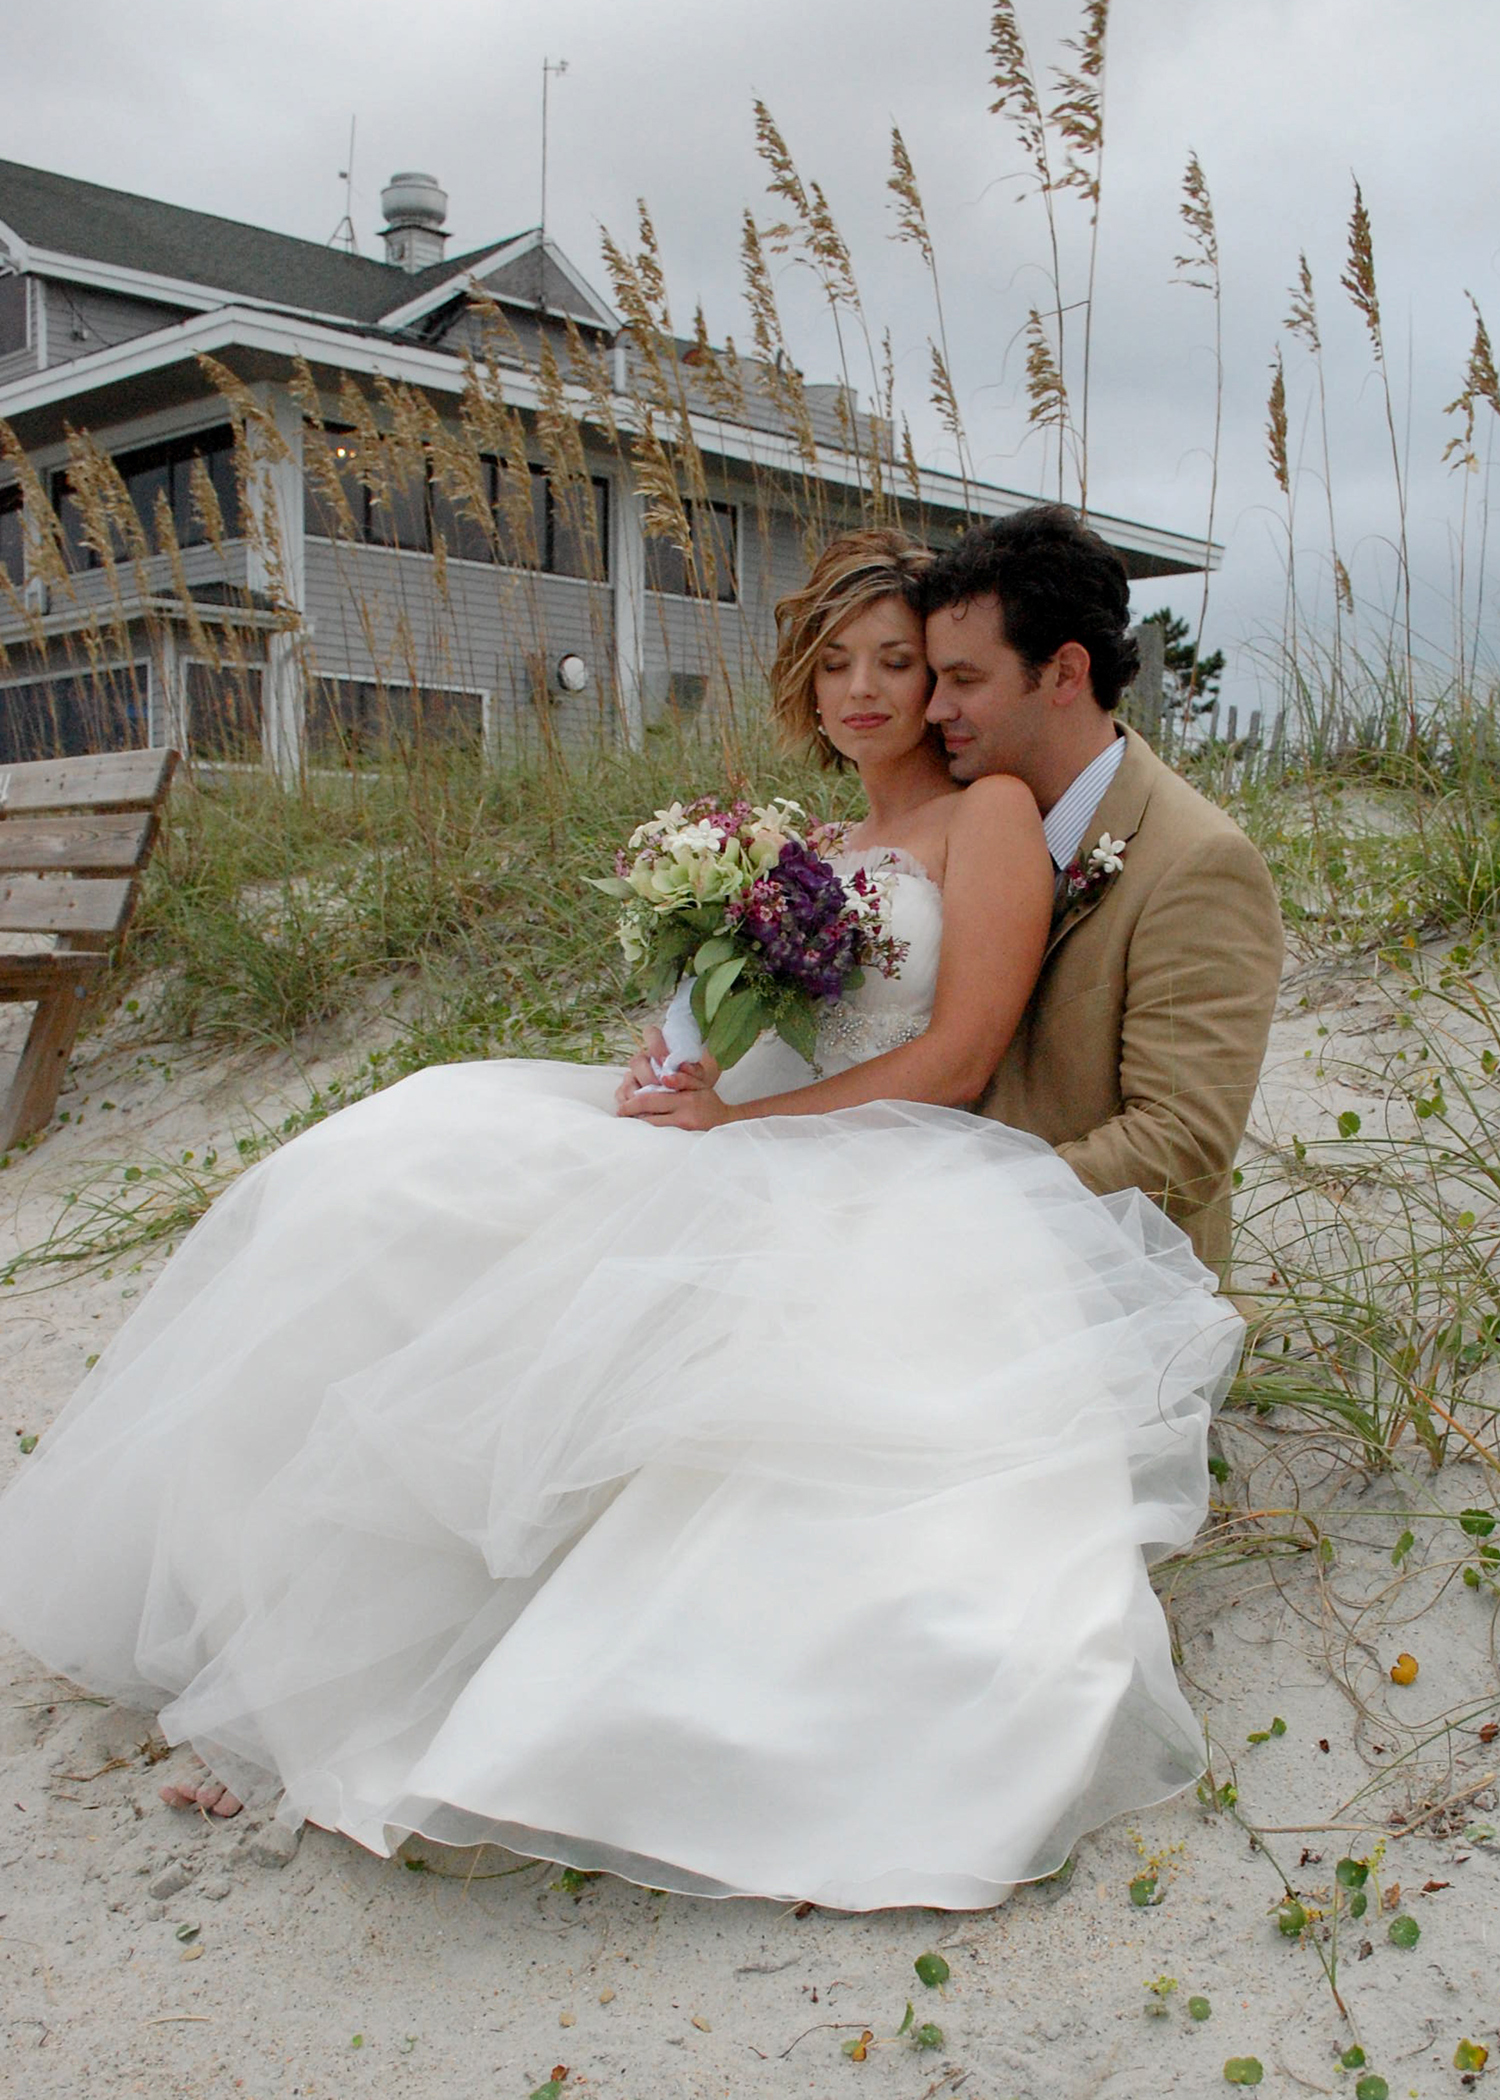 Newly married couple at Wrightsville Beach, NC